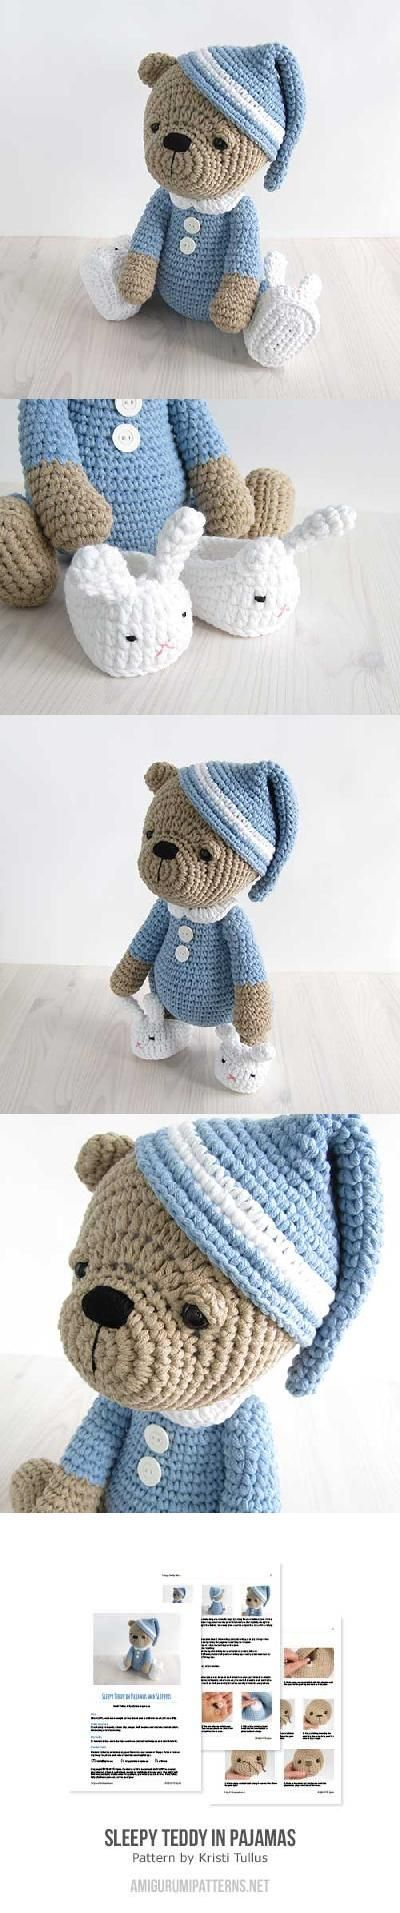 Sleepy teddy in pajamas: | Crochet stuffed animals & characters ...